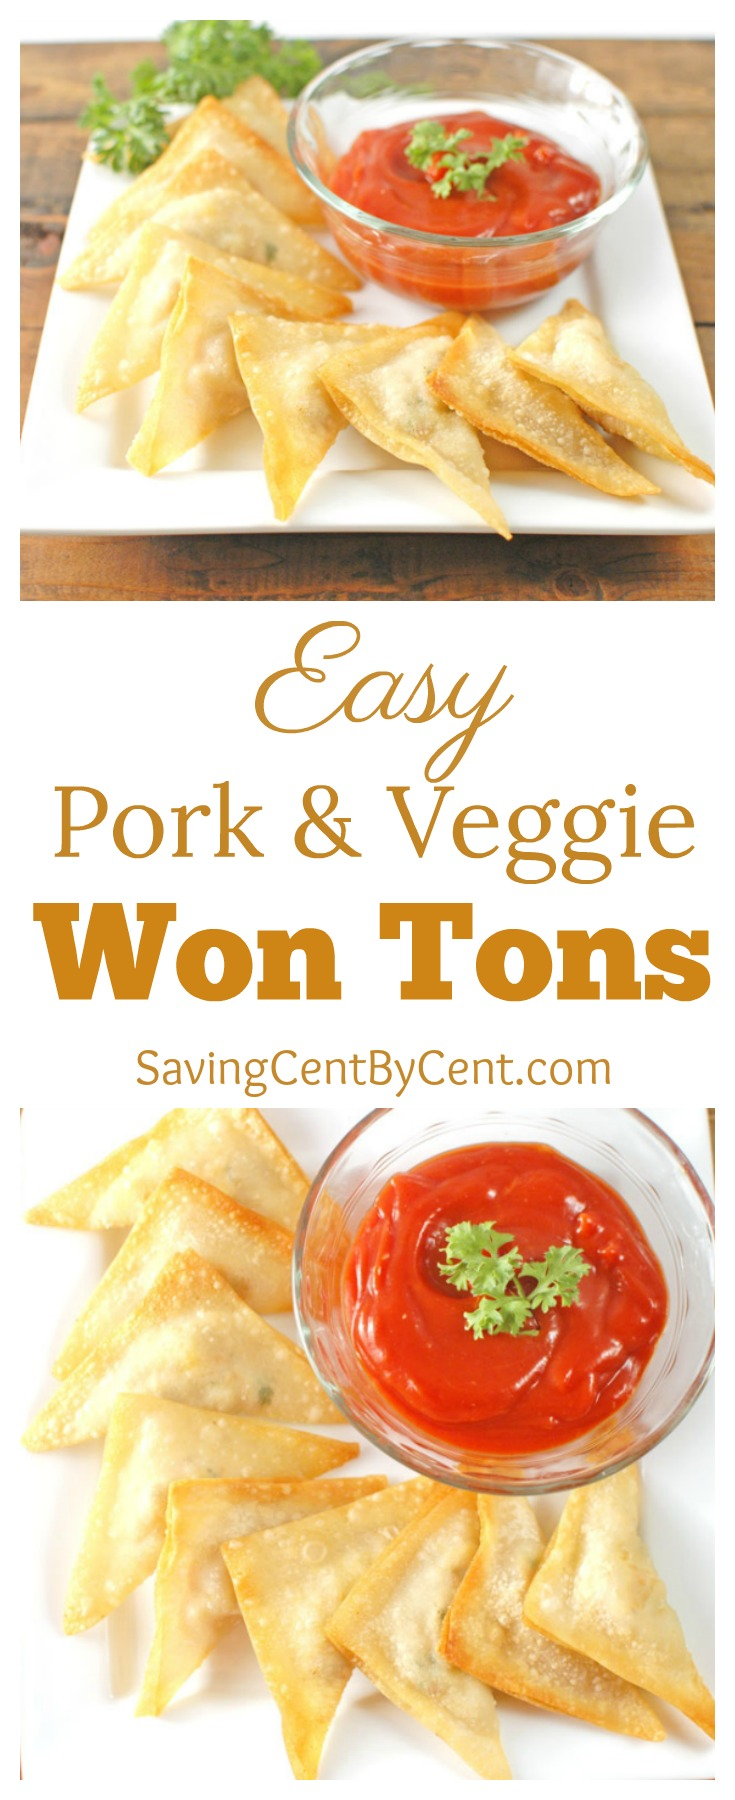 Easy Pork and Veggie Won Tons